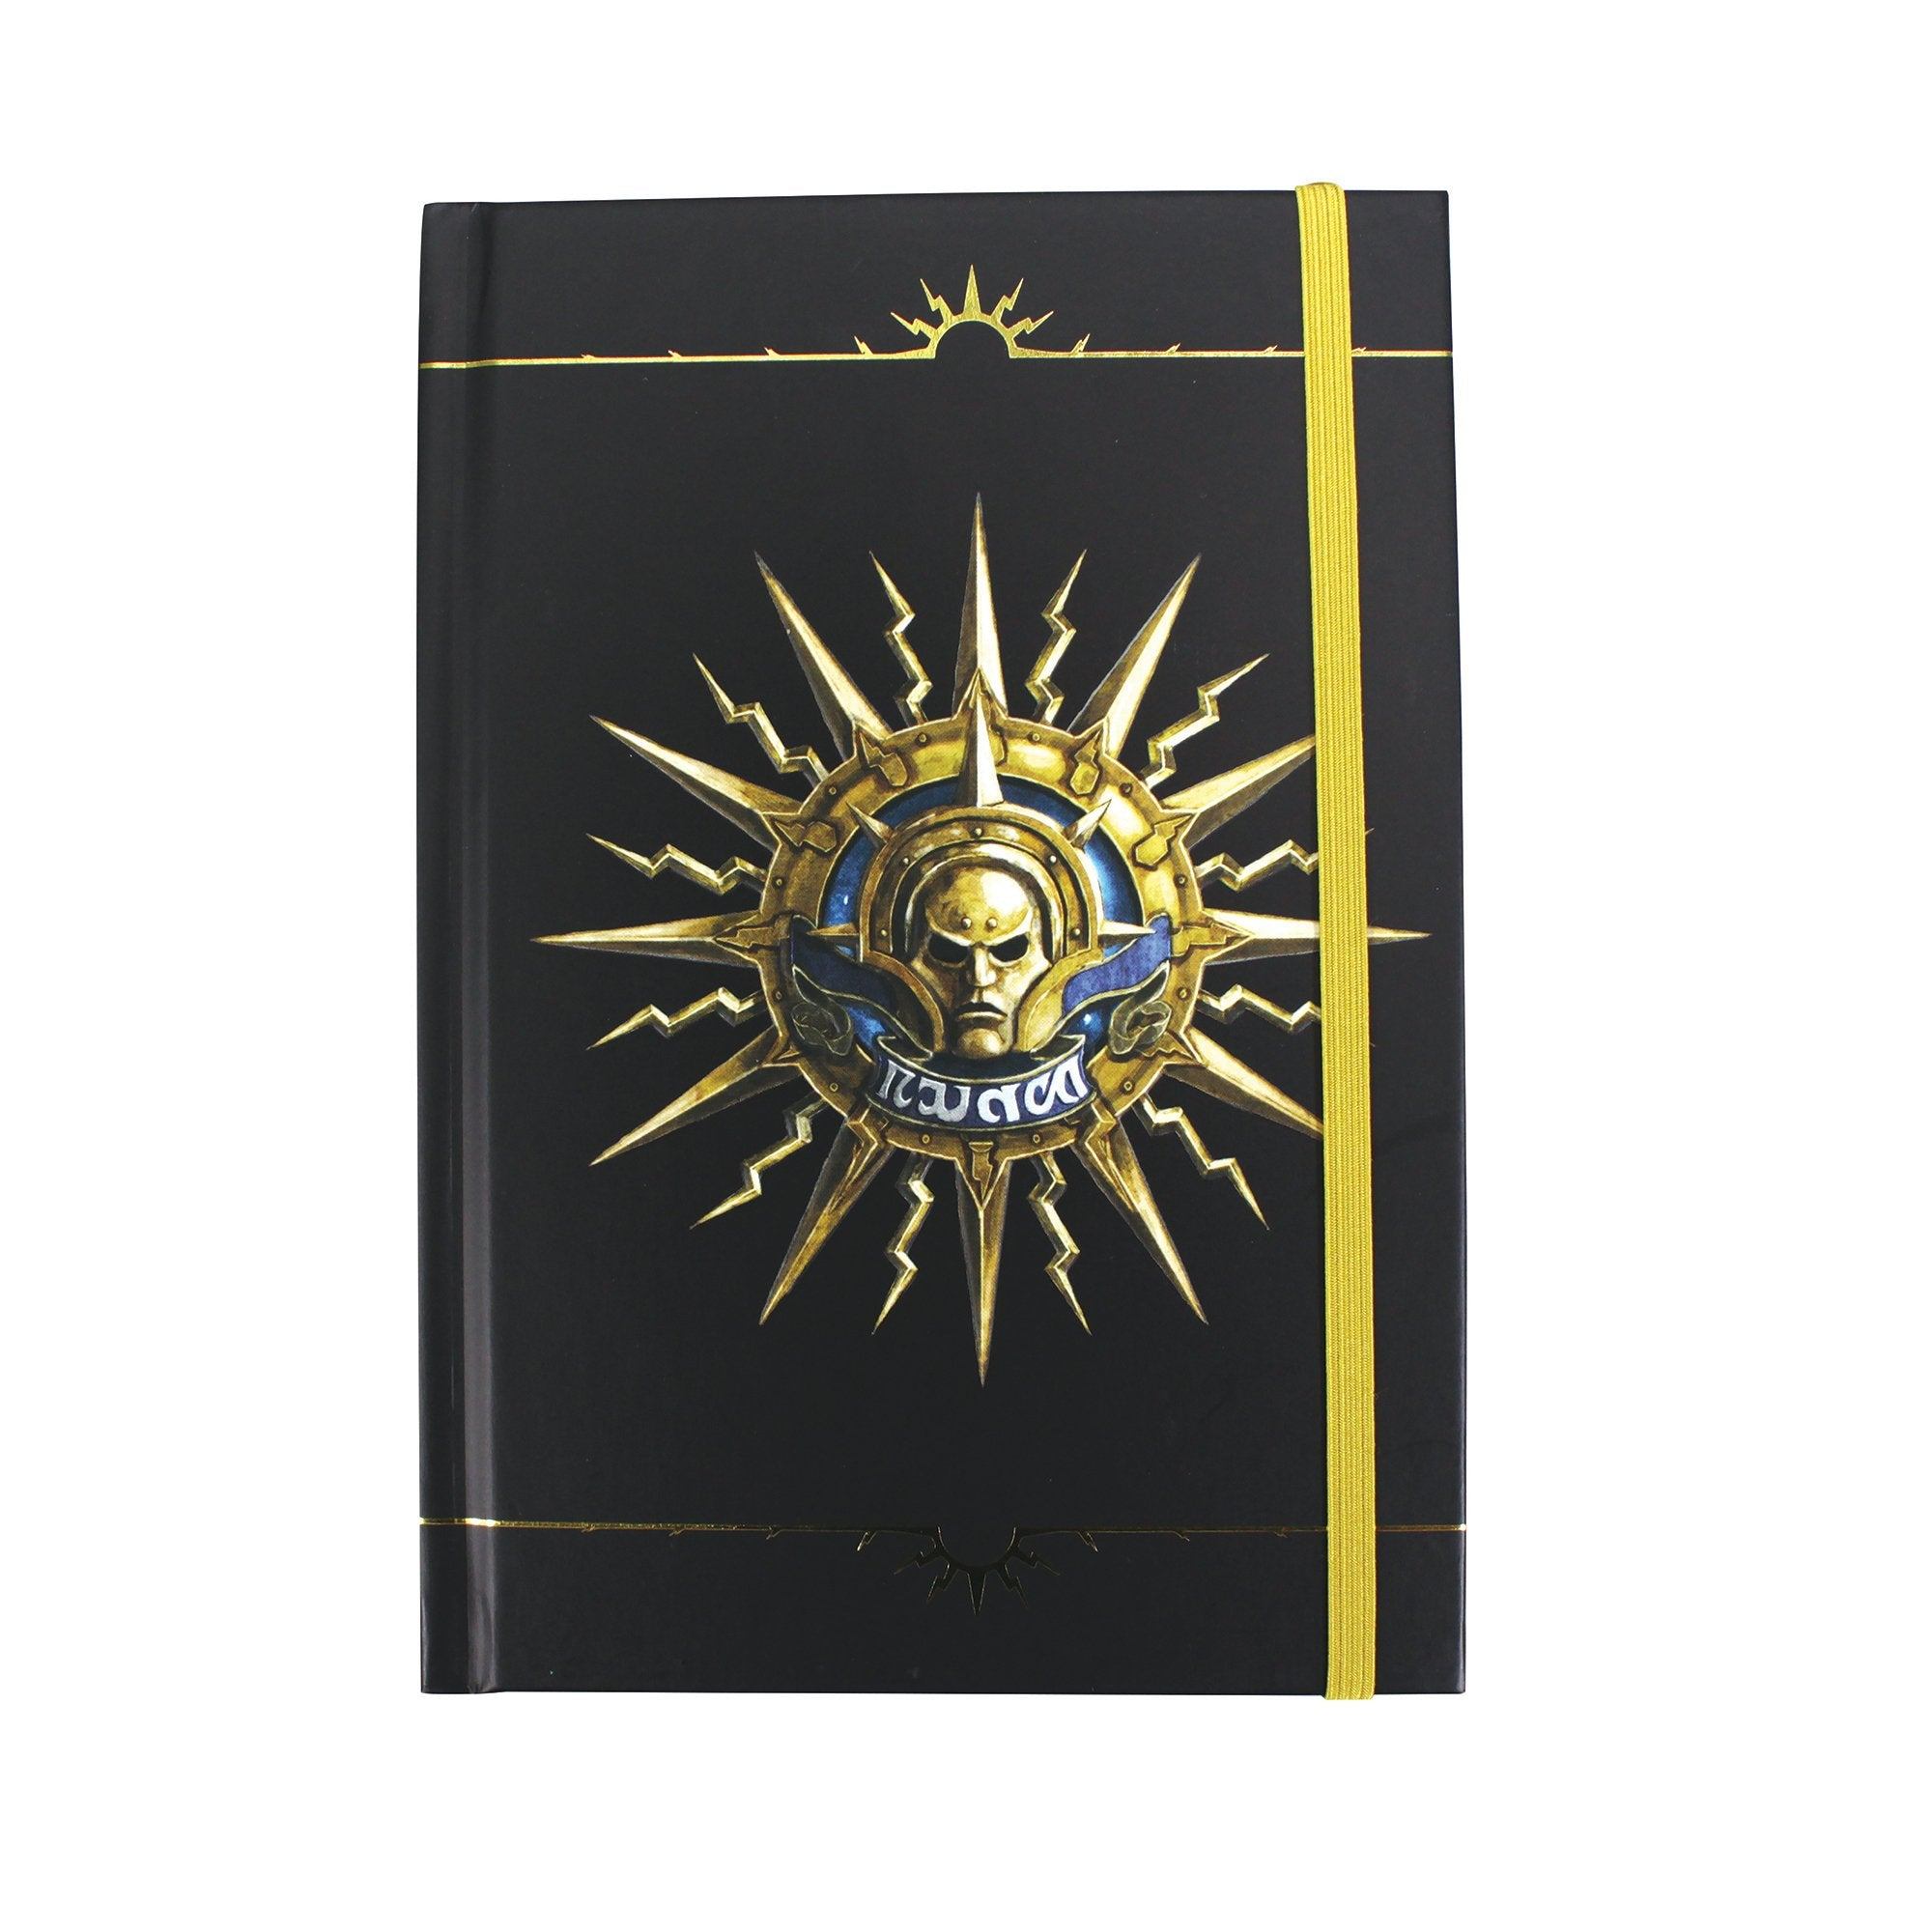 Warhammer Age of Sigmar A5 Notebook - Stormcast Eternal - Half Moon Bay US